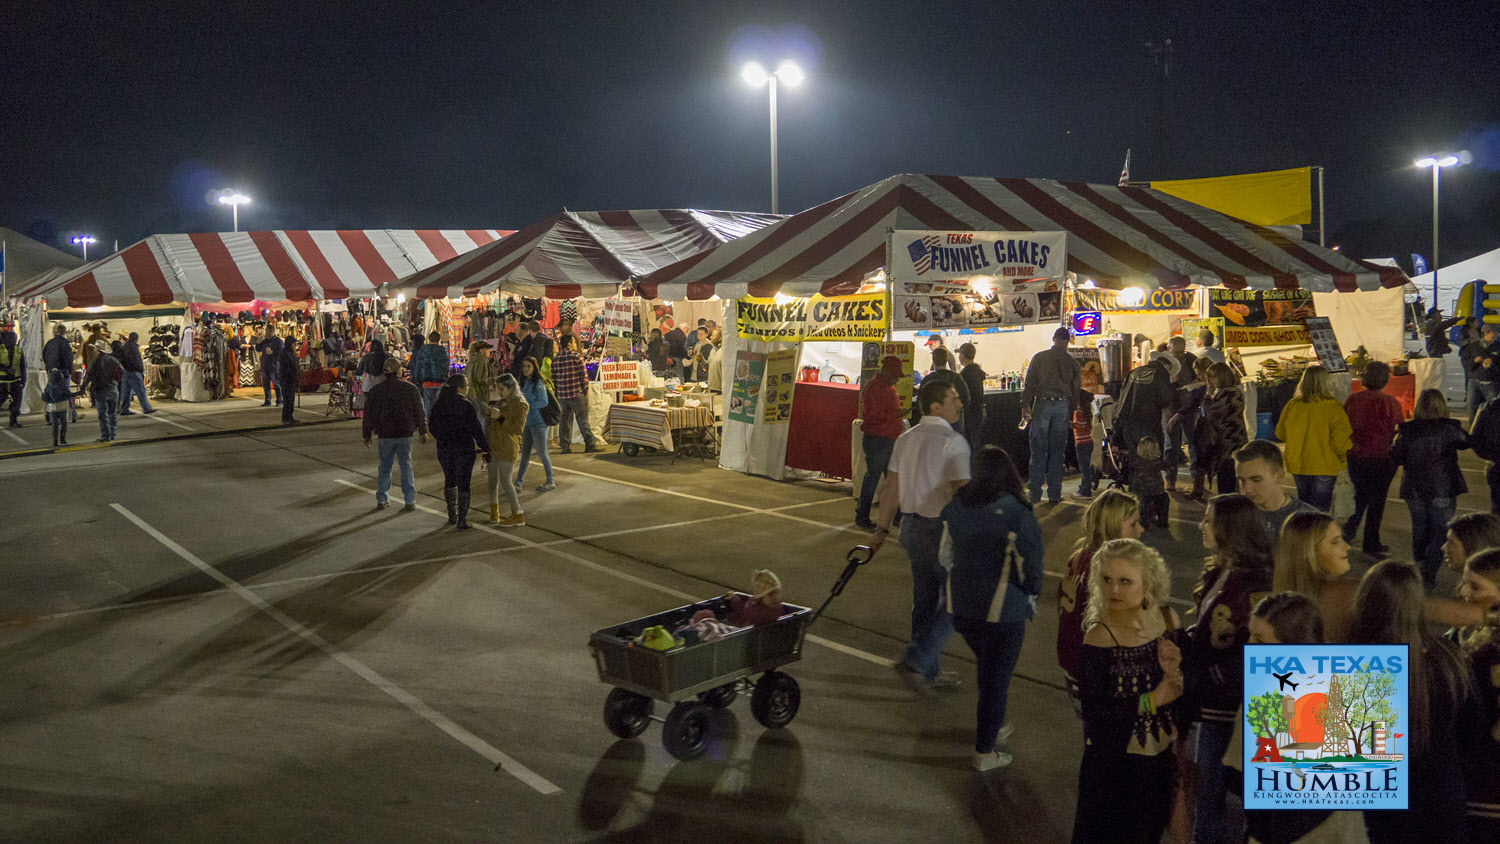 Humble Rodeo BBQ CookOff Photos 1302015